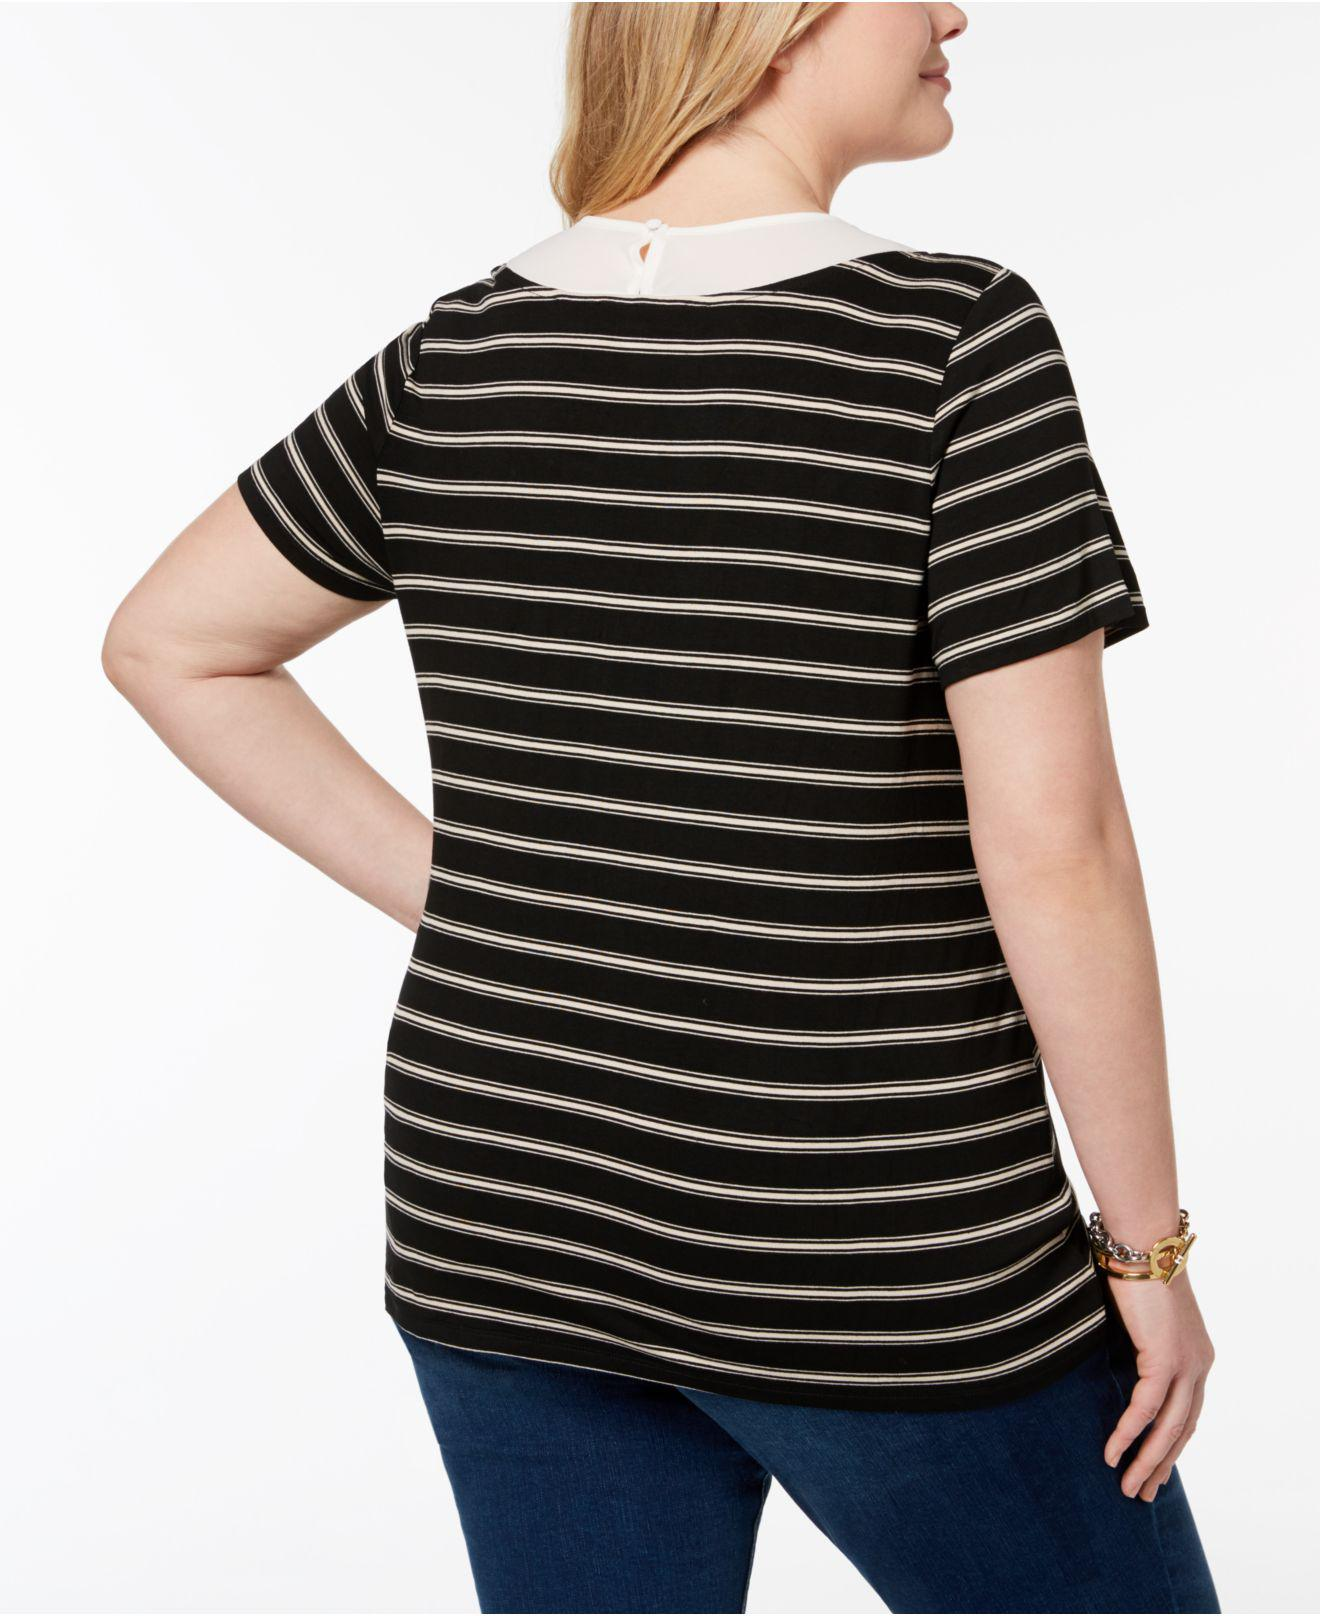 b780a587087 Lyst - Tommy Hilfiger Plus Size Inset-collar Striped Top